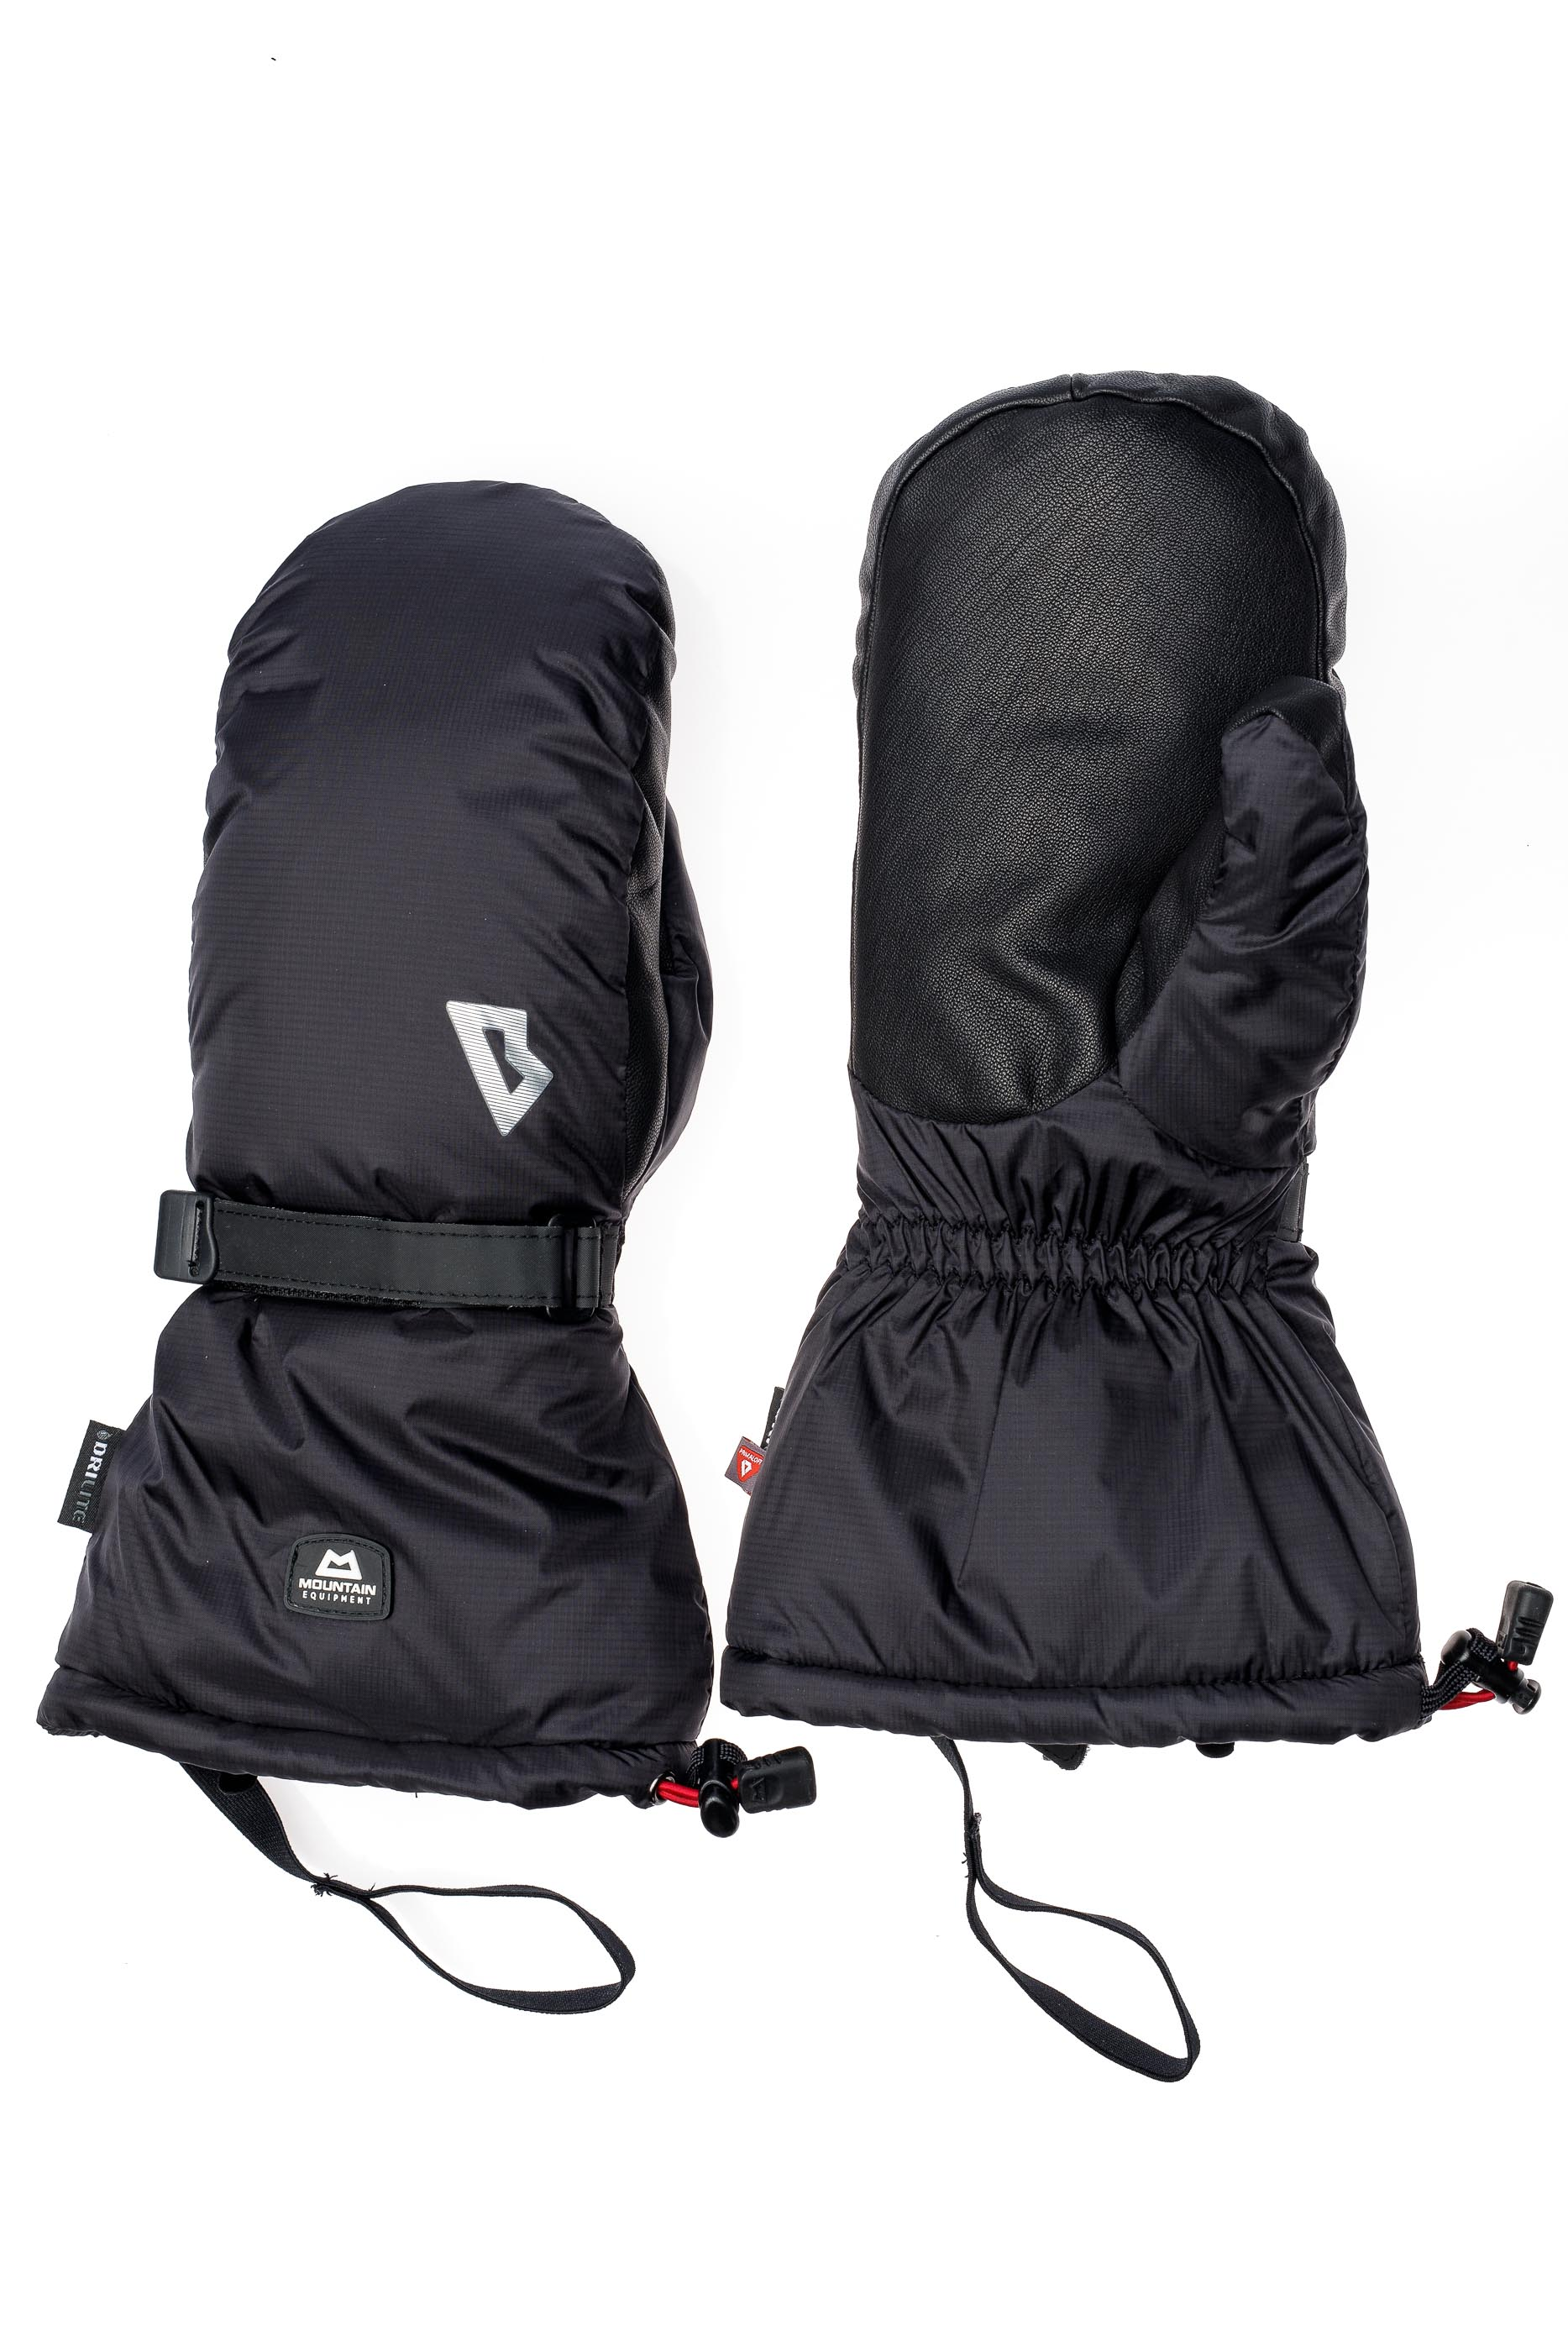 Варежки Mountain Equipment Redline Black - Фото 2 большая